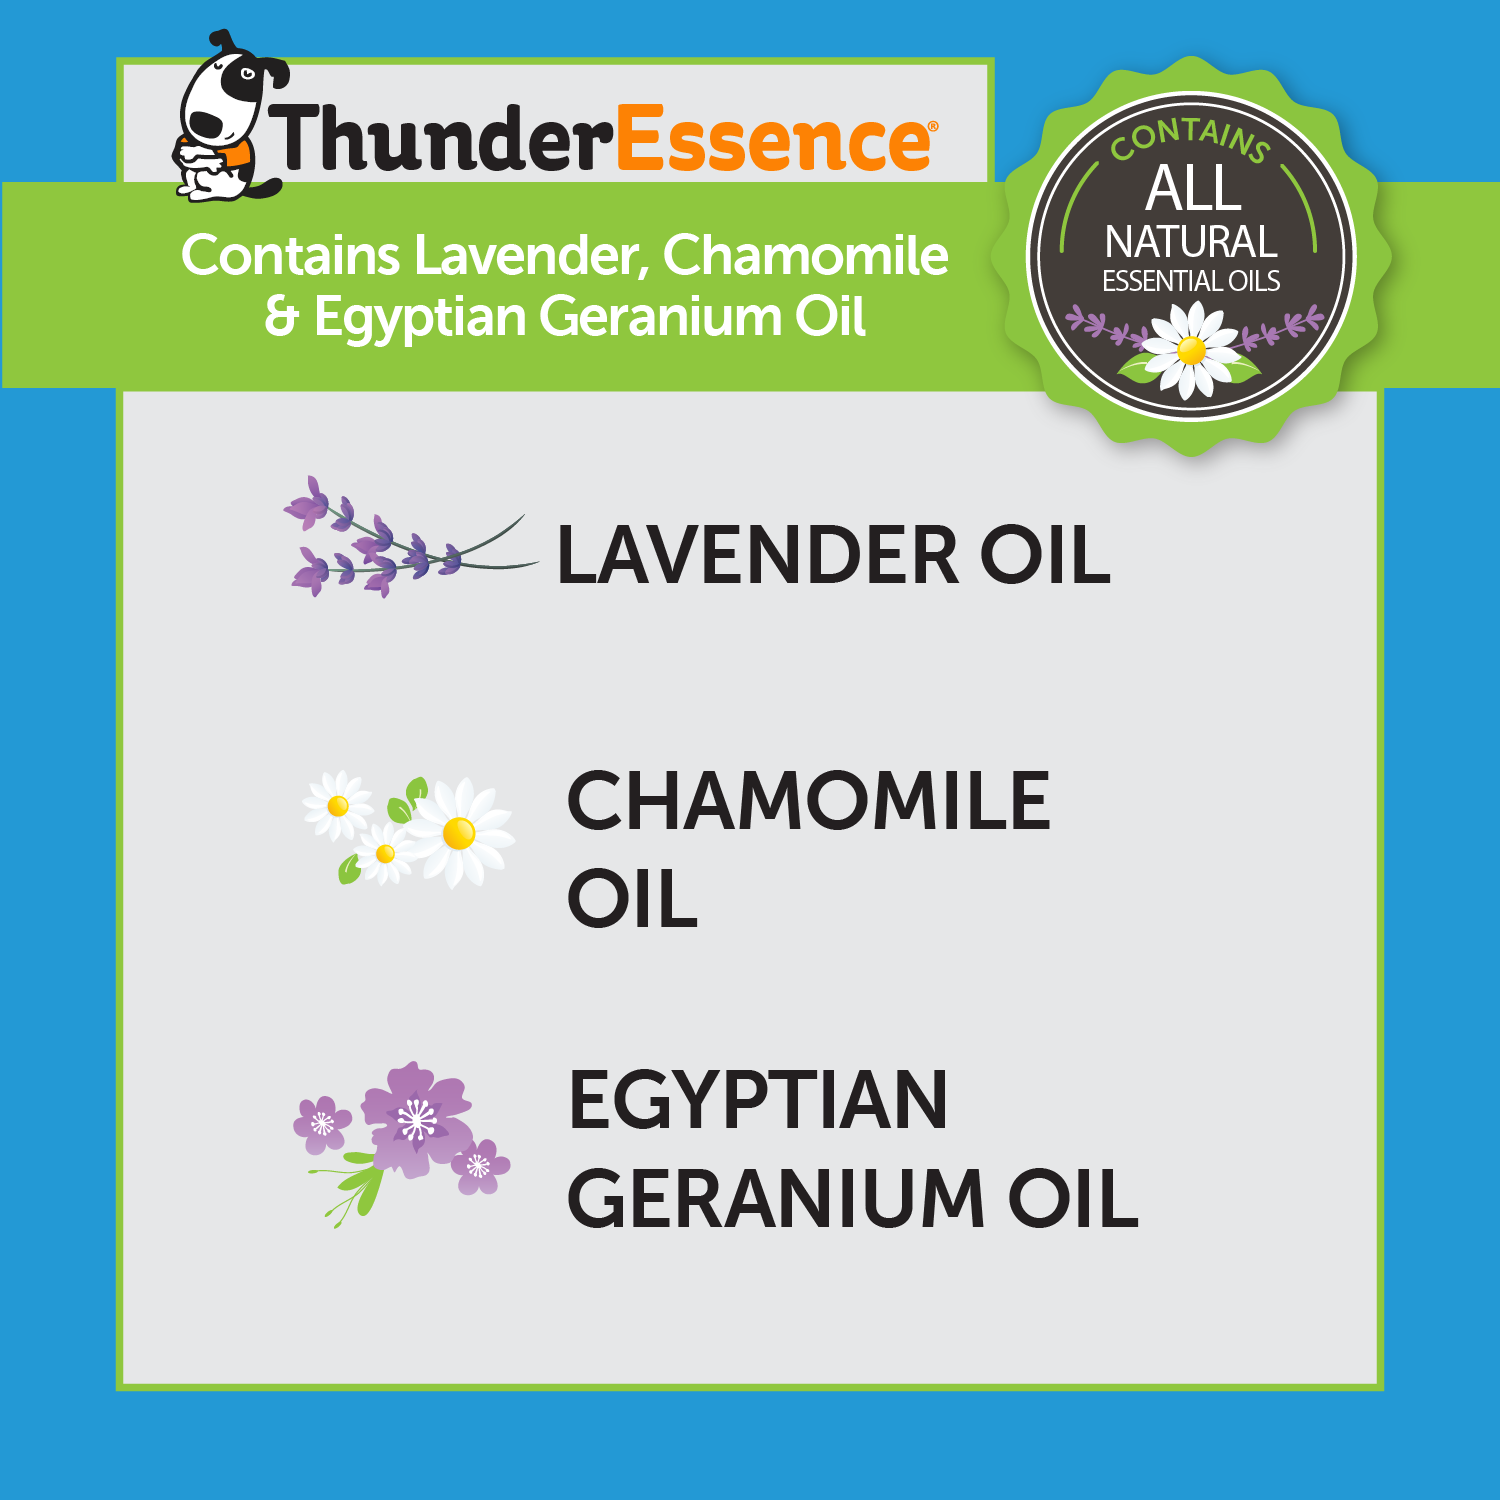 ThunderEssence Essential Oil for Dogs - Spray Ingredients